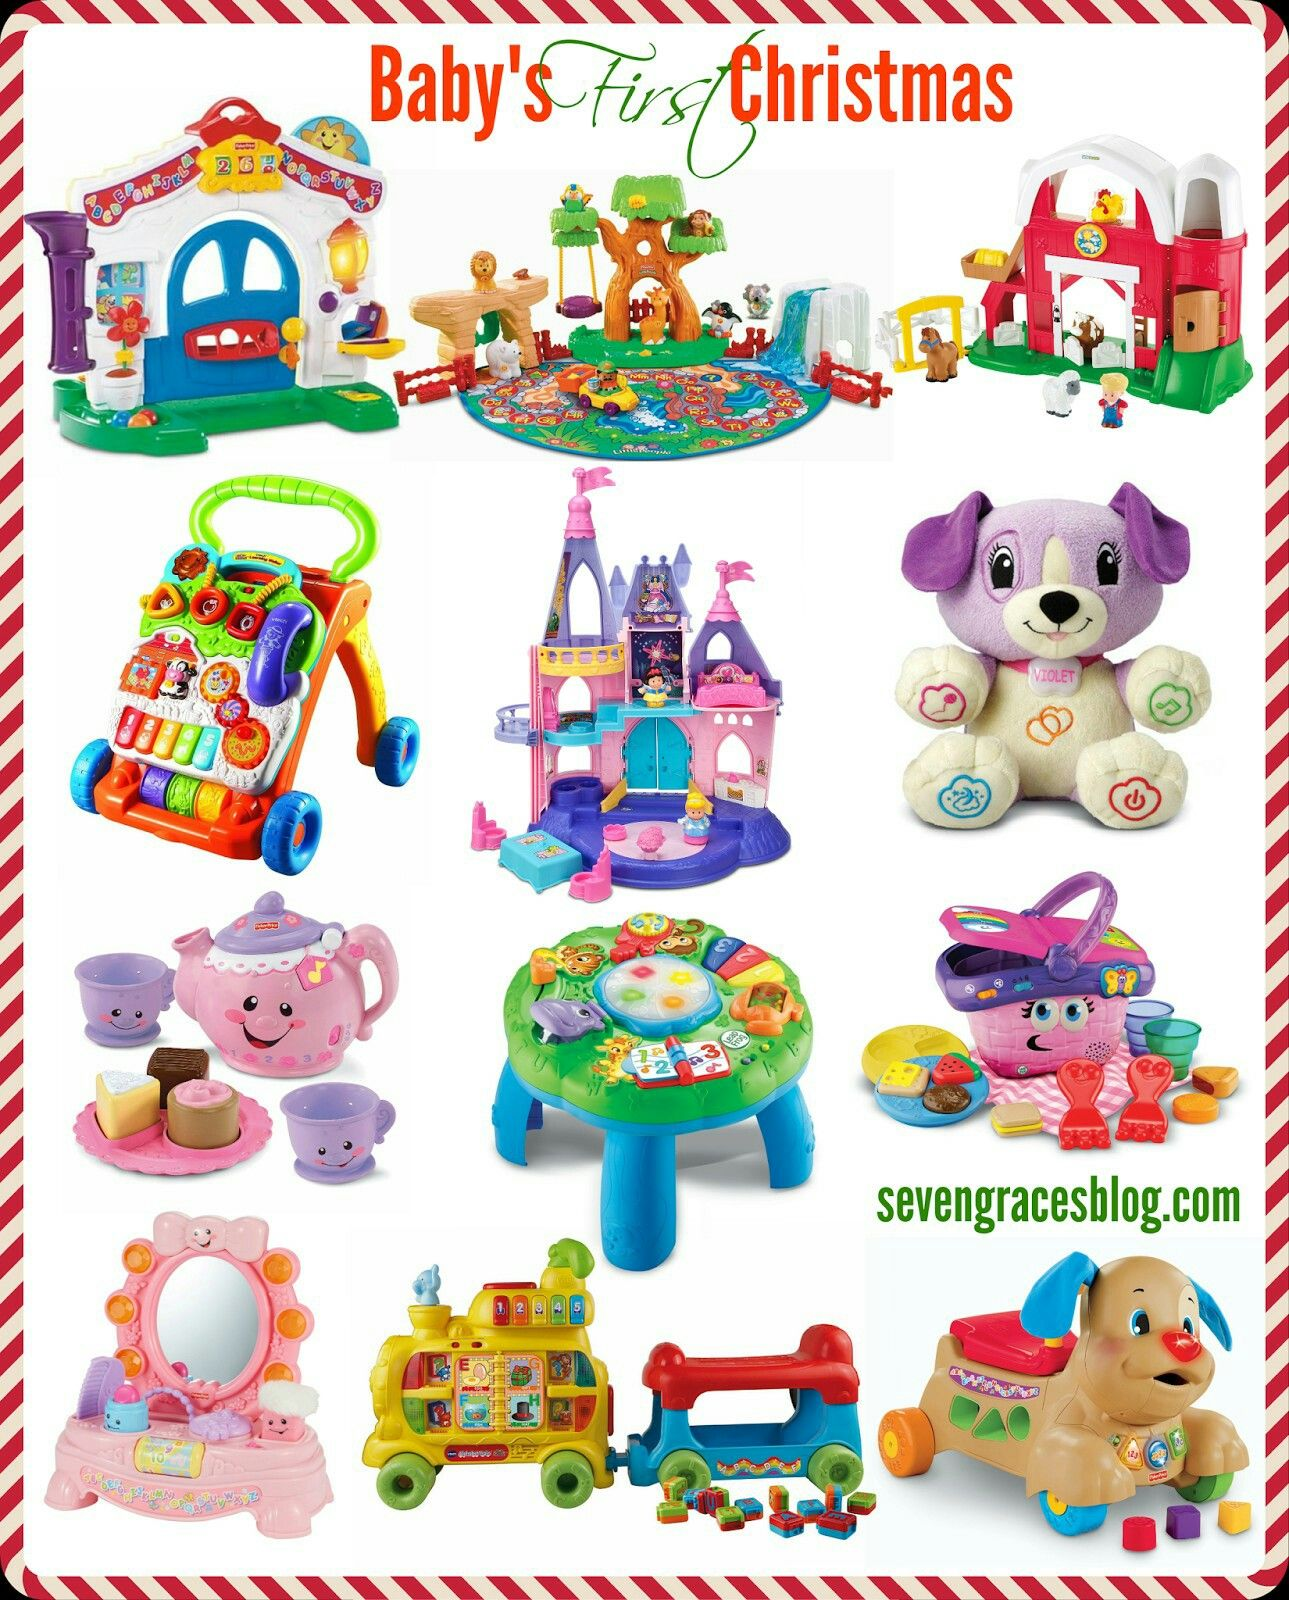 Christmas Gifts For Baby 10 Year Old Presents Babys 1st Last